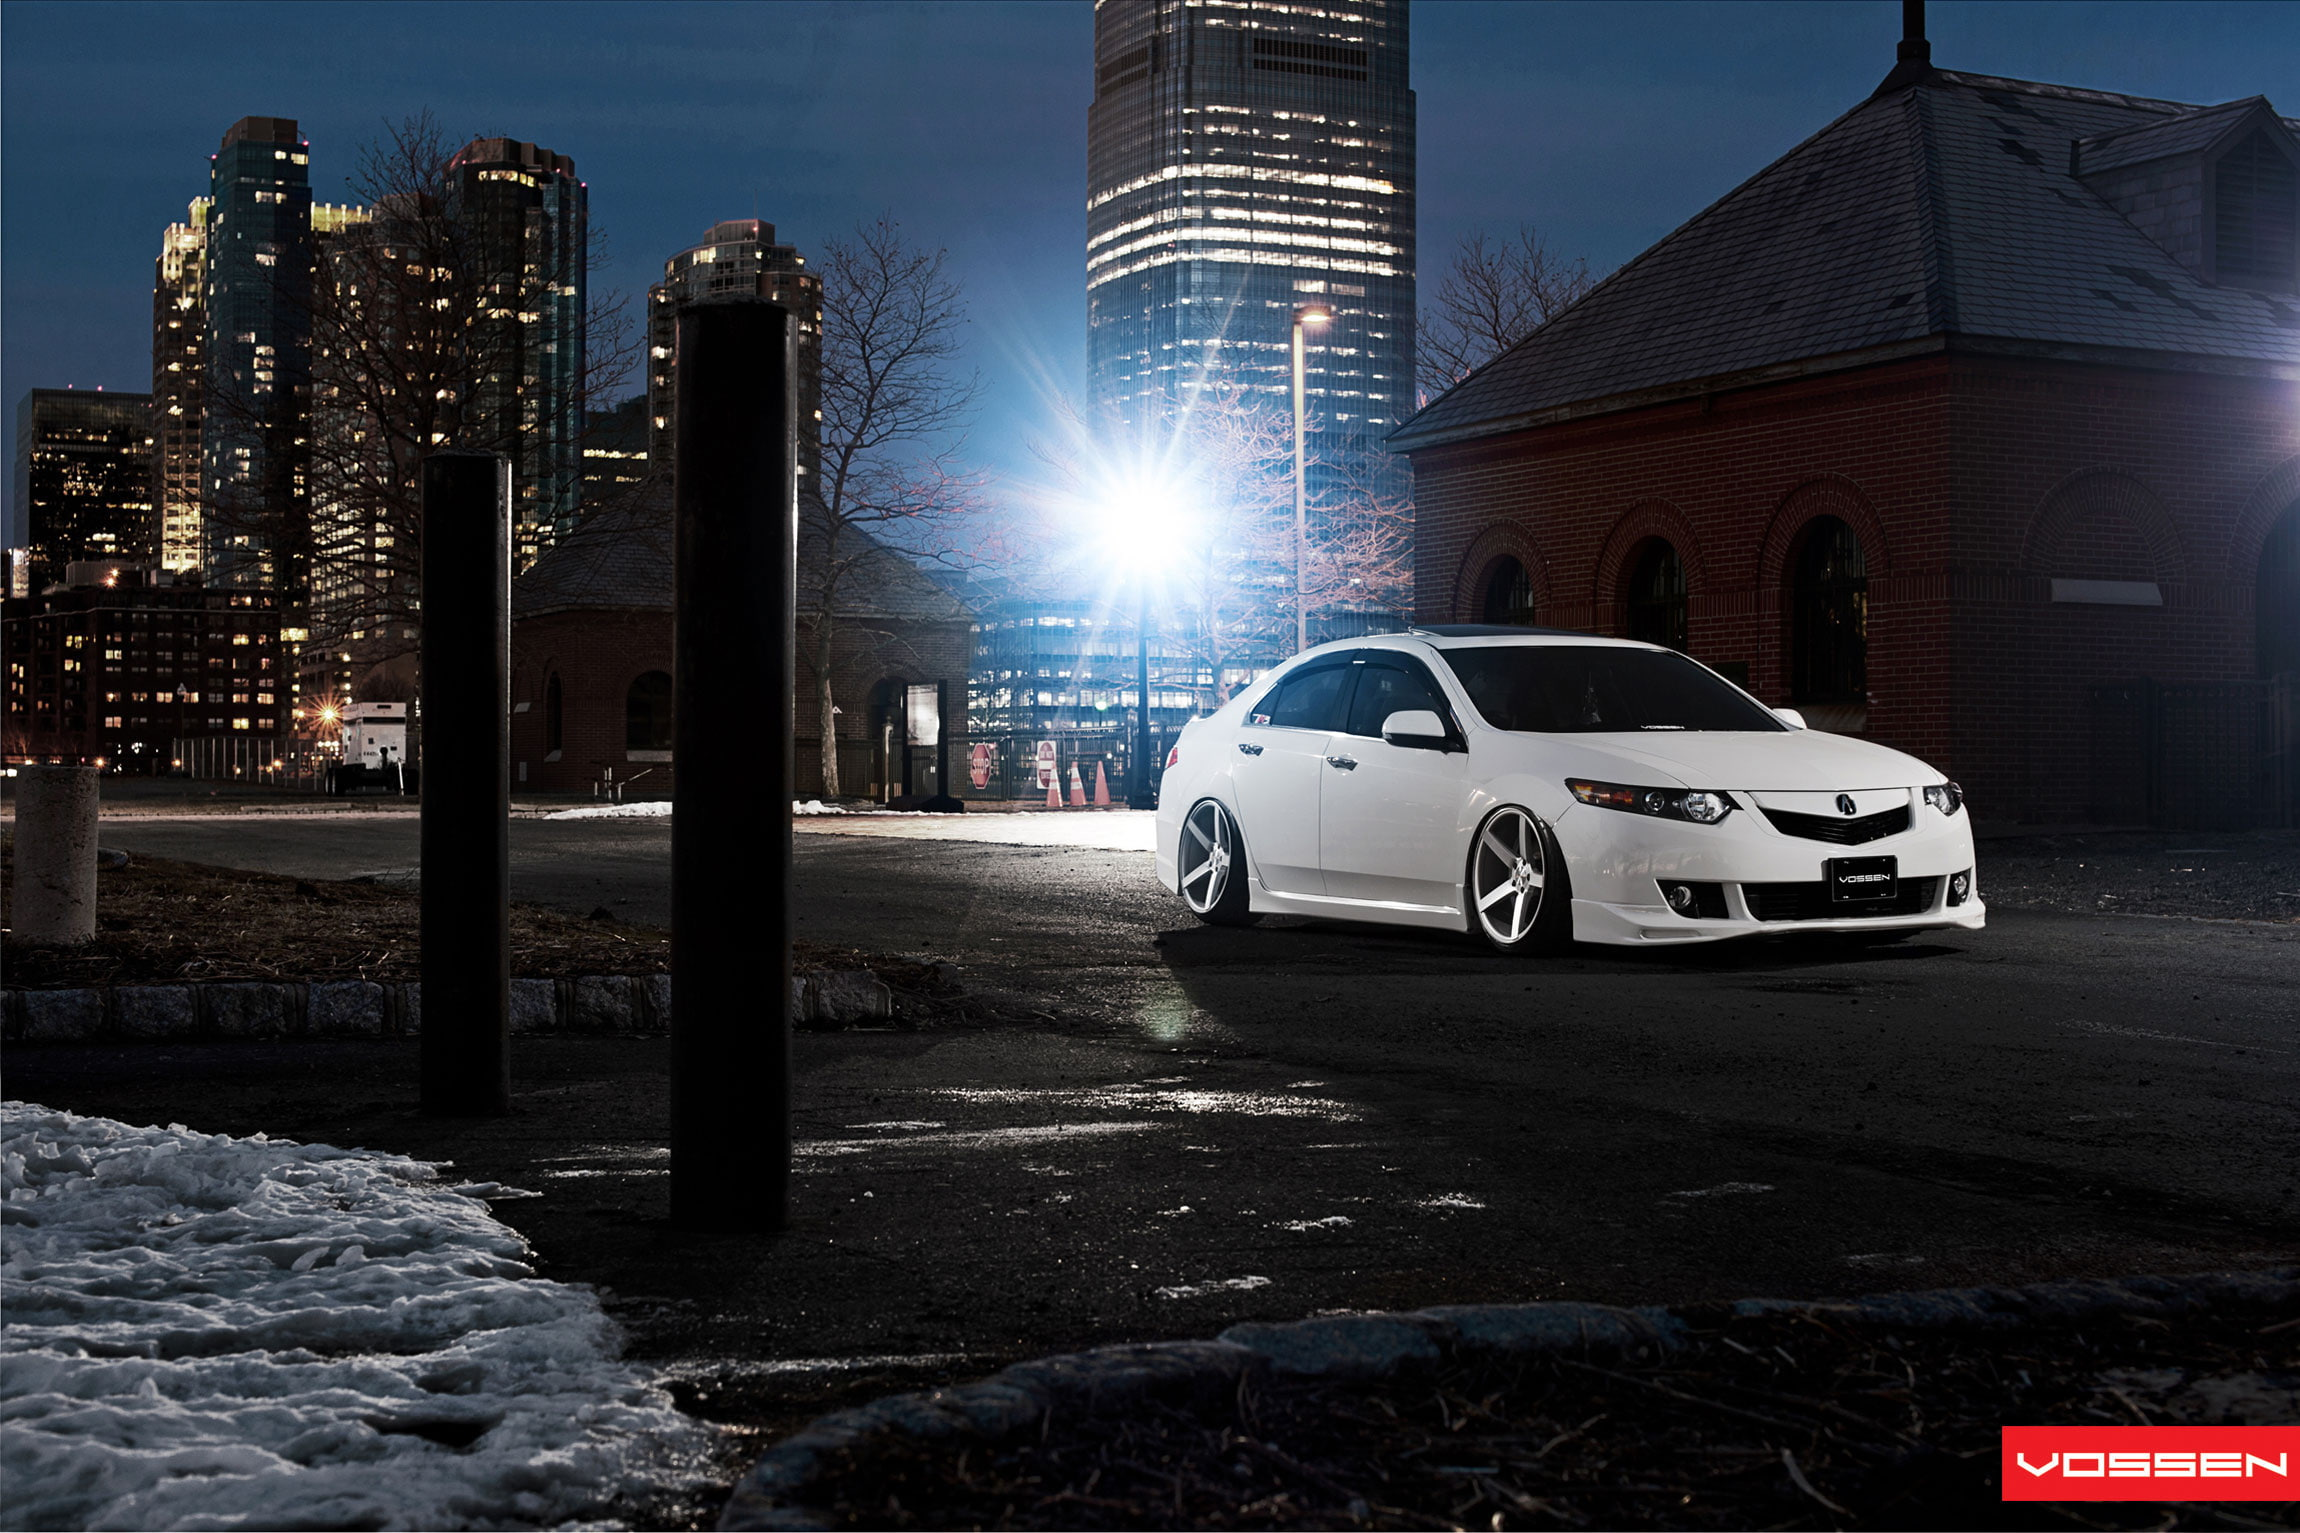 Lantern White Honda Accord Tuning Chord Acura Acura Tsx 18 Vossen 1493230 Hd Wallpaper Backgrounds Download